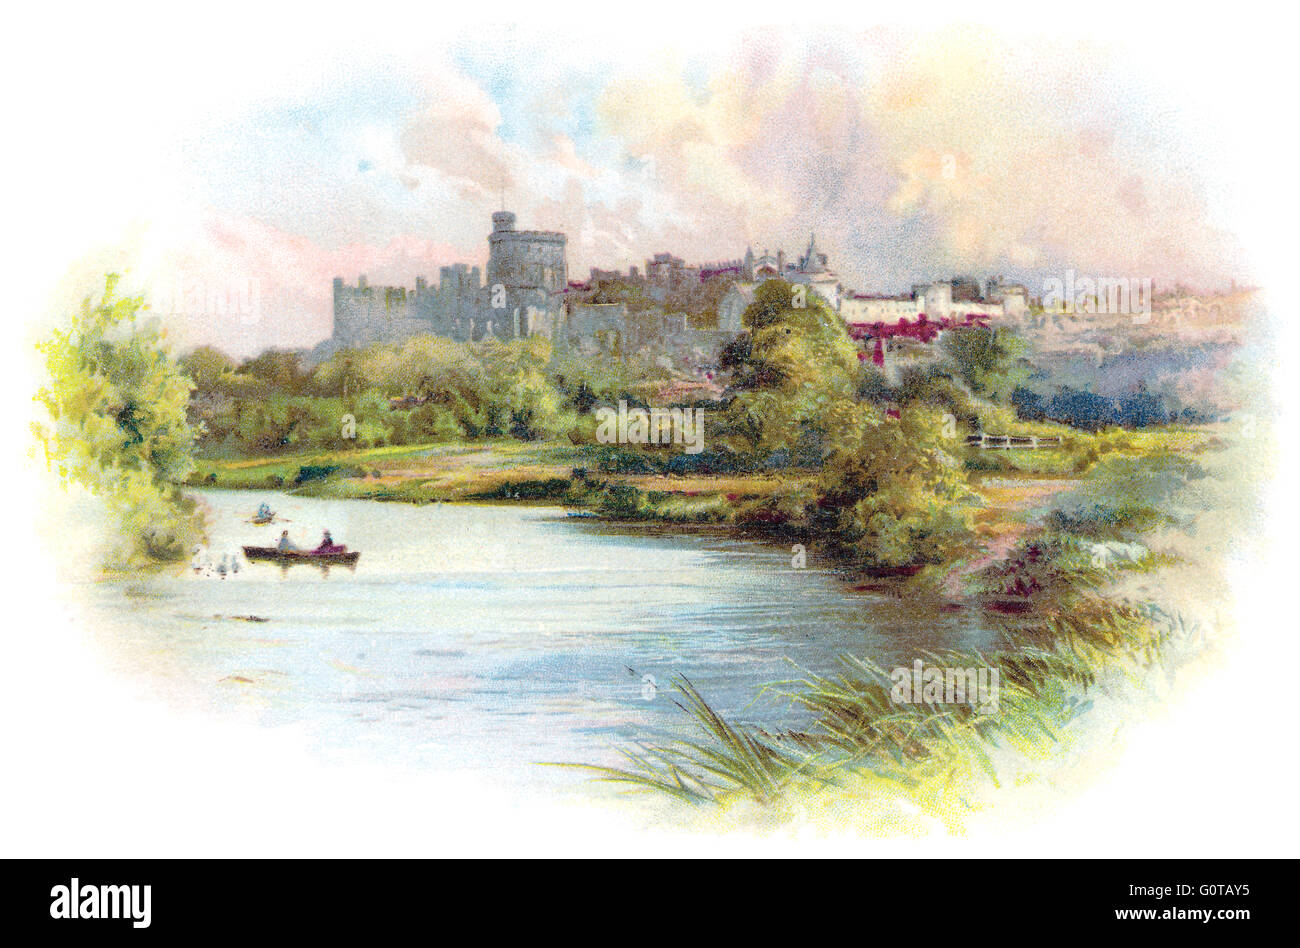 Colour chromolithographic illustration of Windsor Castle and the River Thames, taken from an Edwardian postcard. - Stock Image